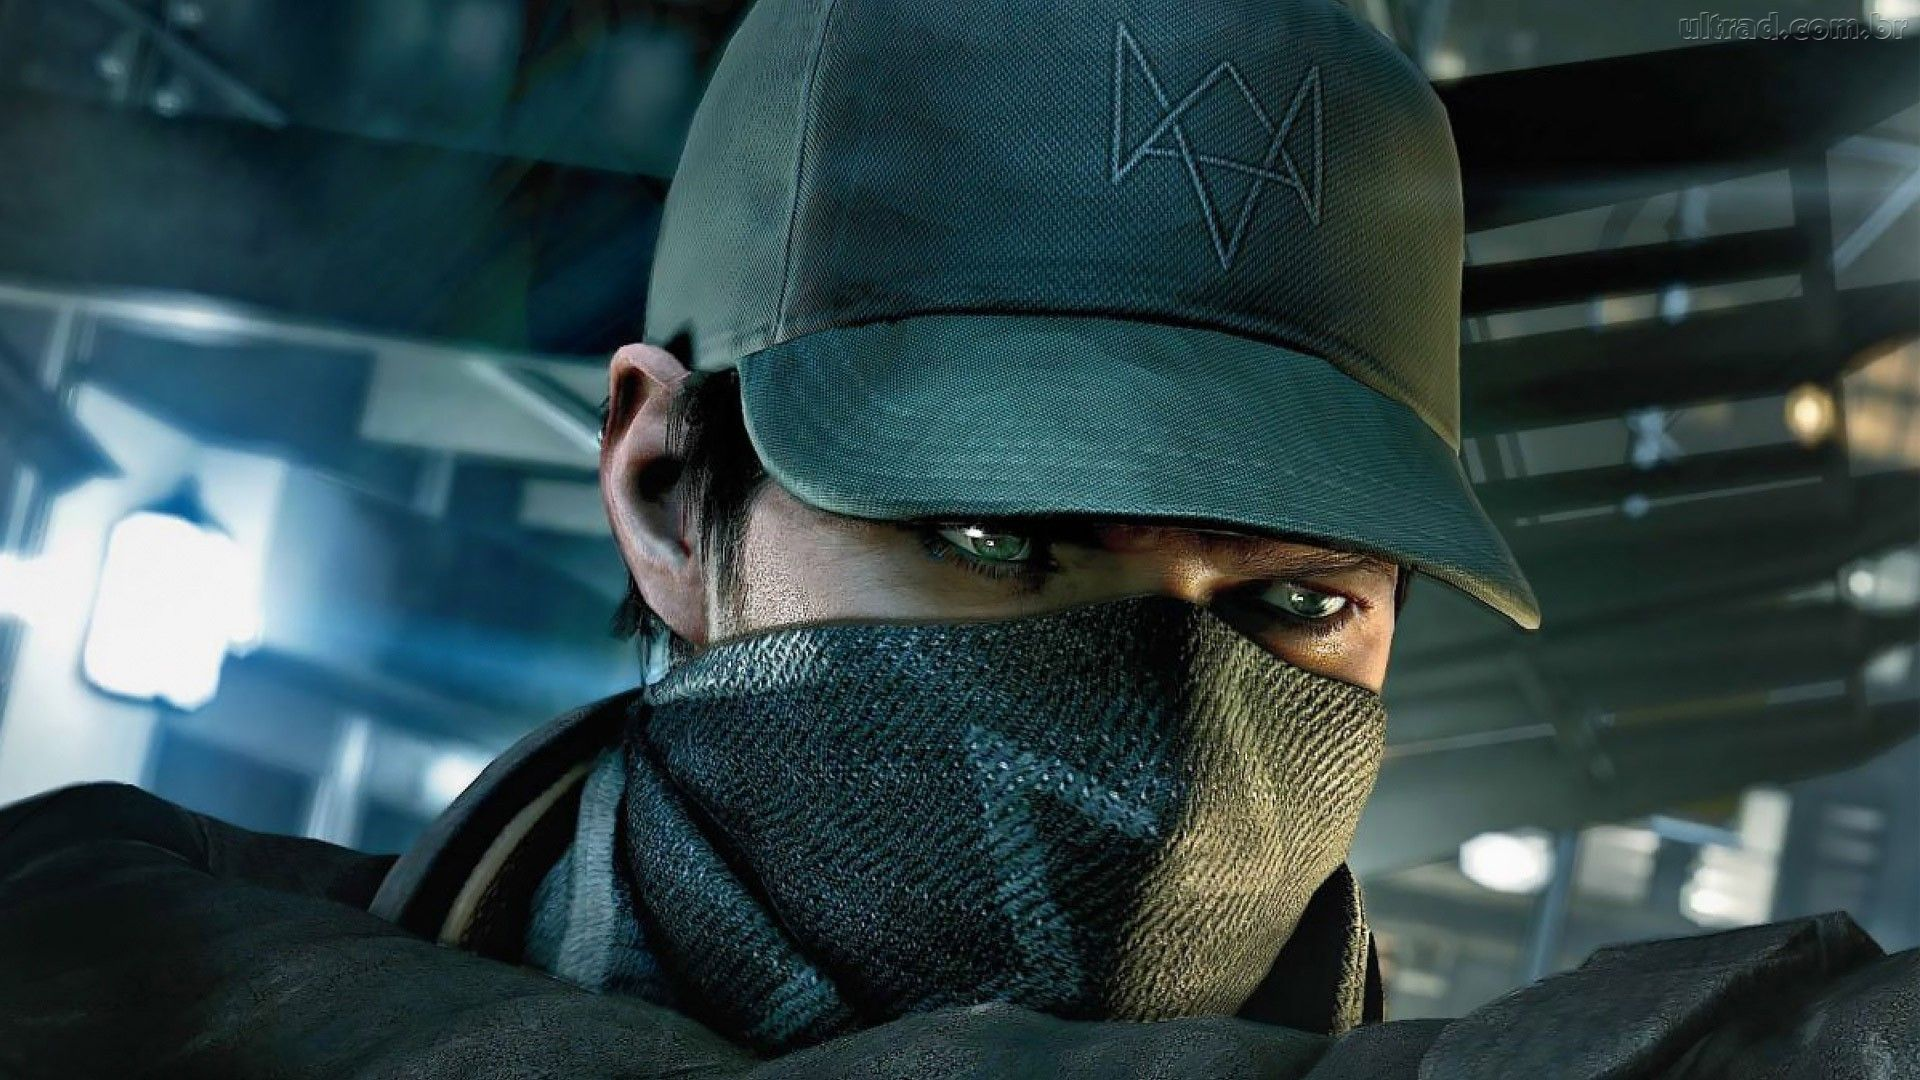 Watch Dogs Wallpaper 1920 1080 Wallpaper Watch Dogs Watch Dogs